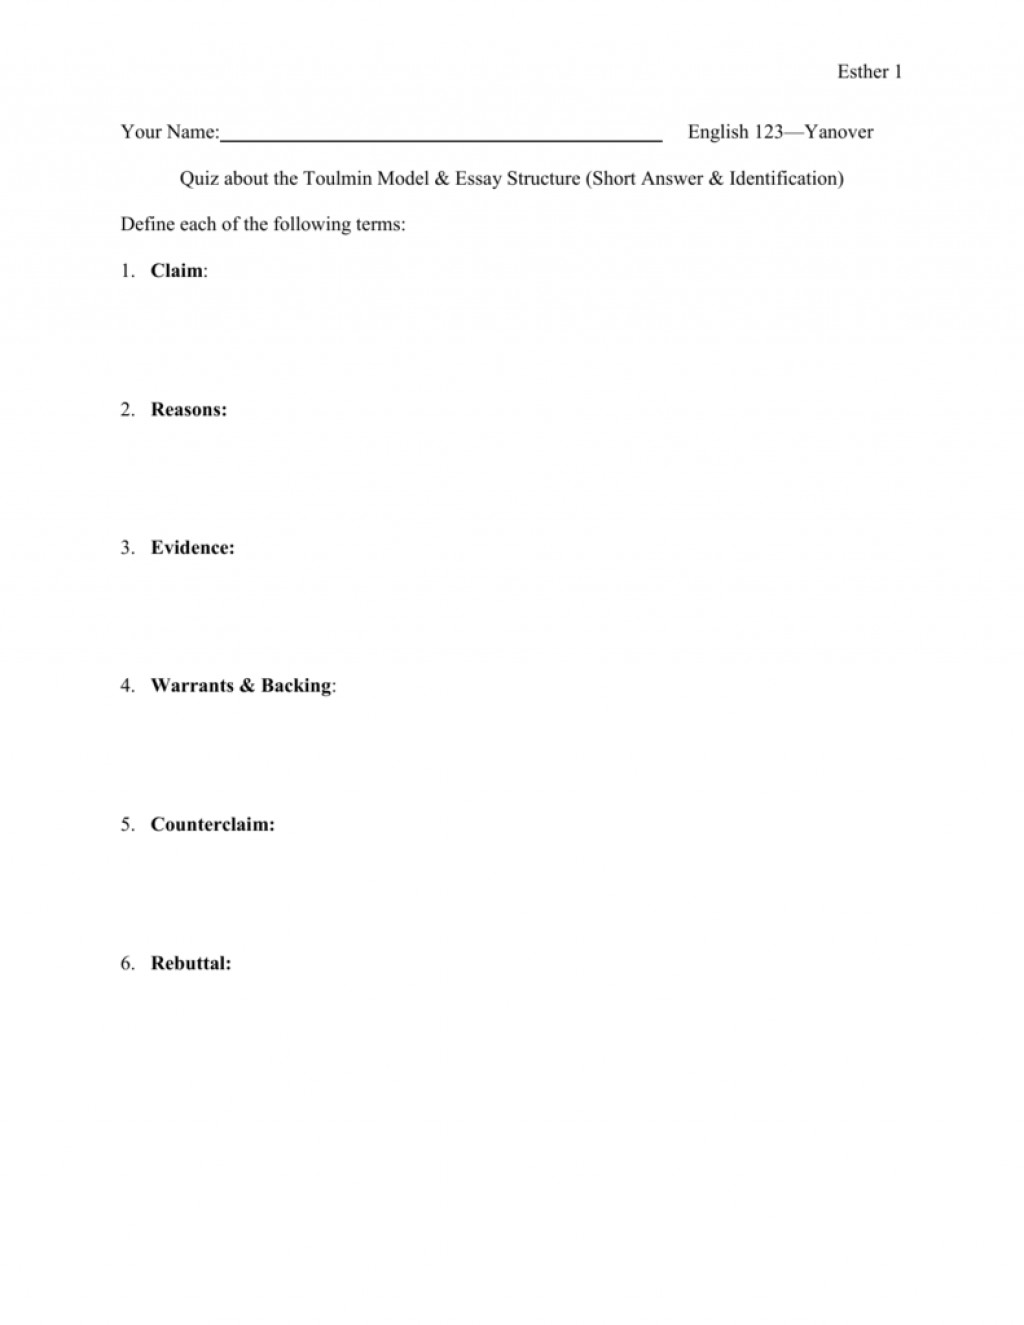 018 009570885 1 Toulmin Essay Striking Method Outline Large